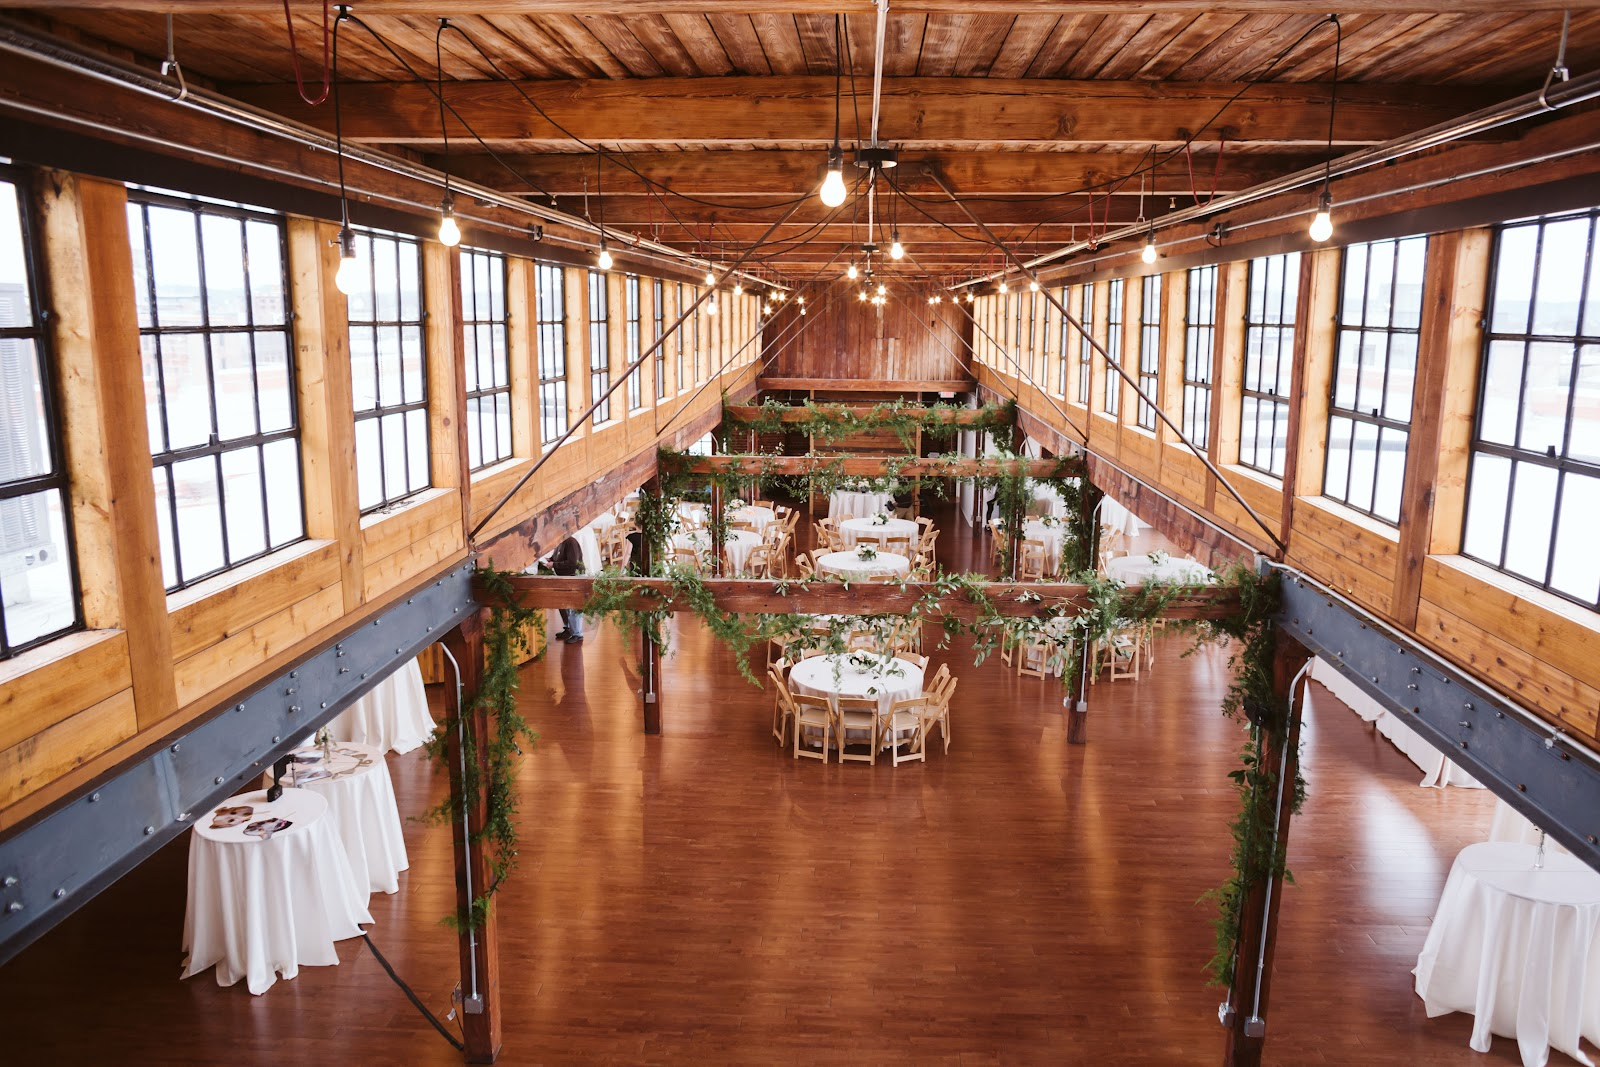 chattanooga wedding venue the turnbull building